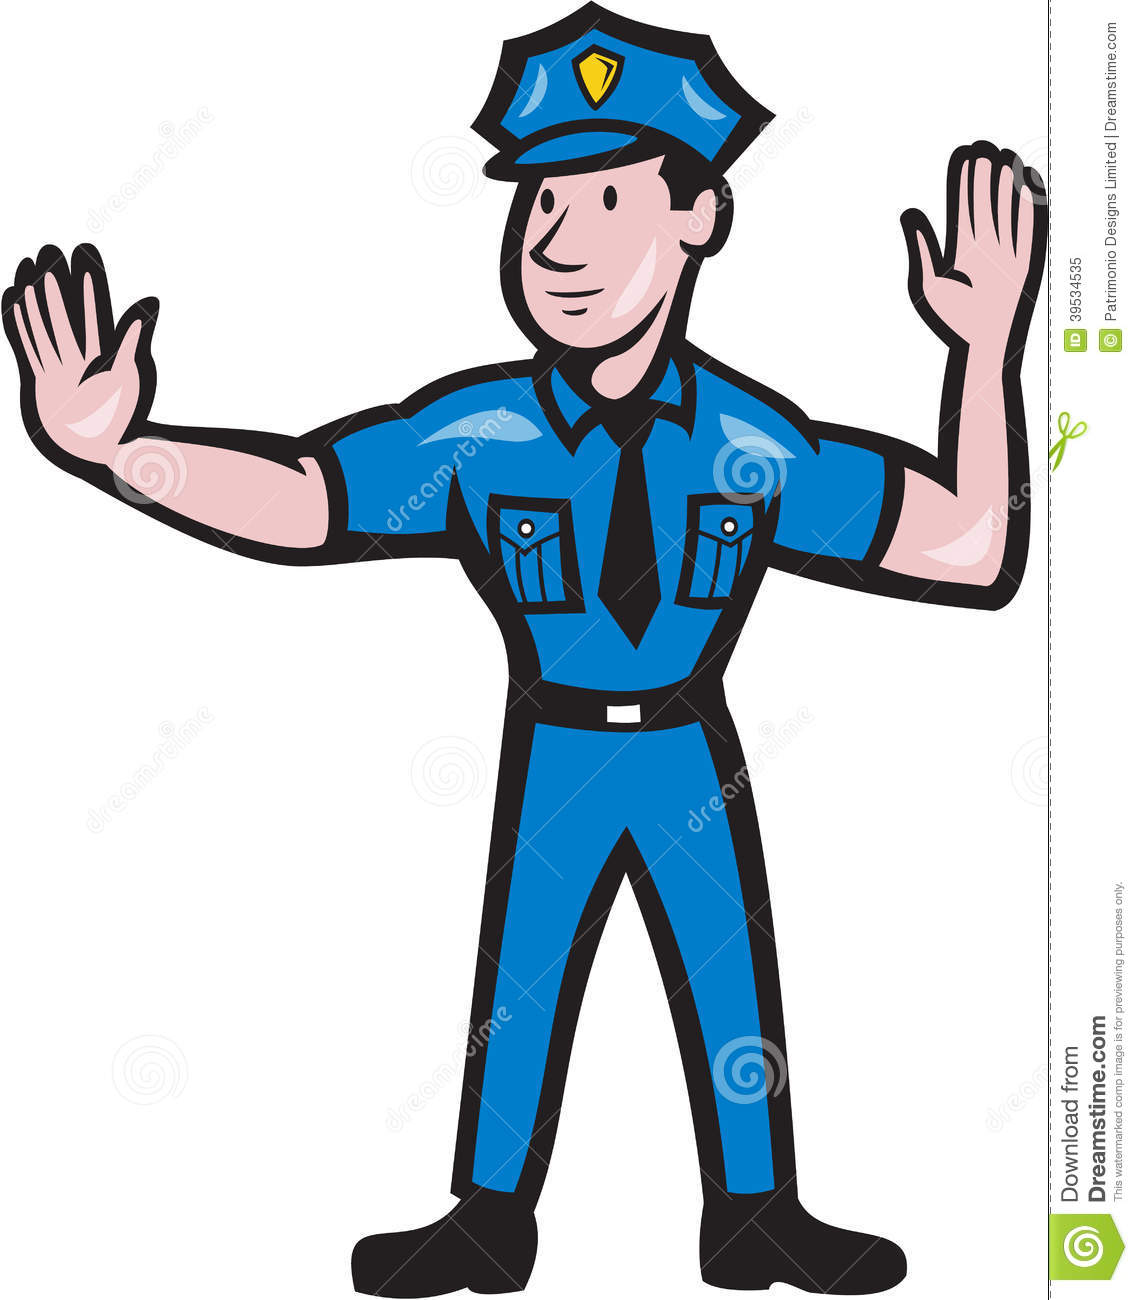 Policeman funny free images. Clipart panda police stop